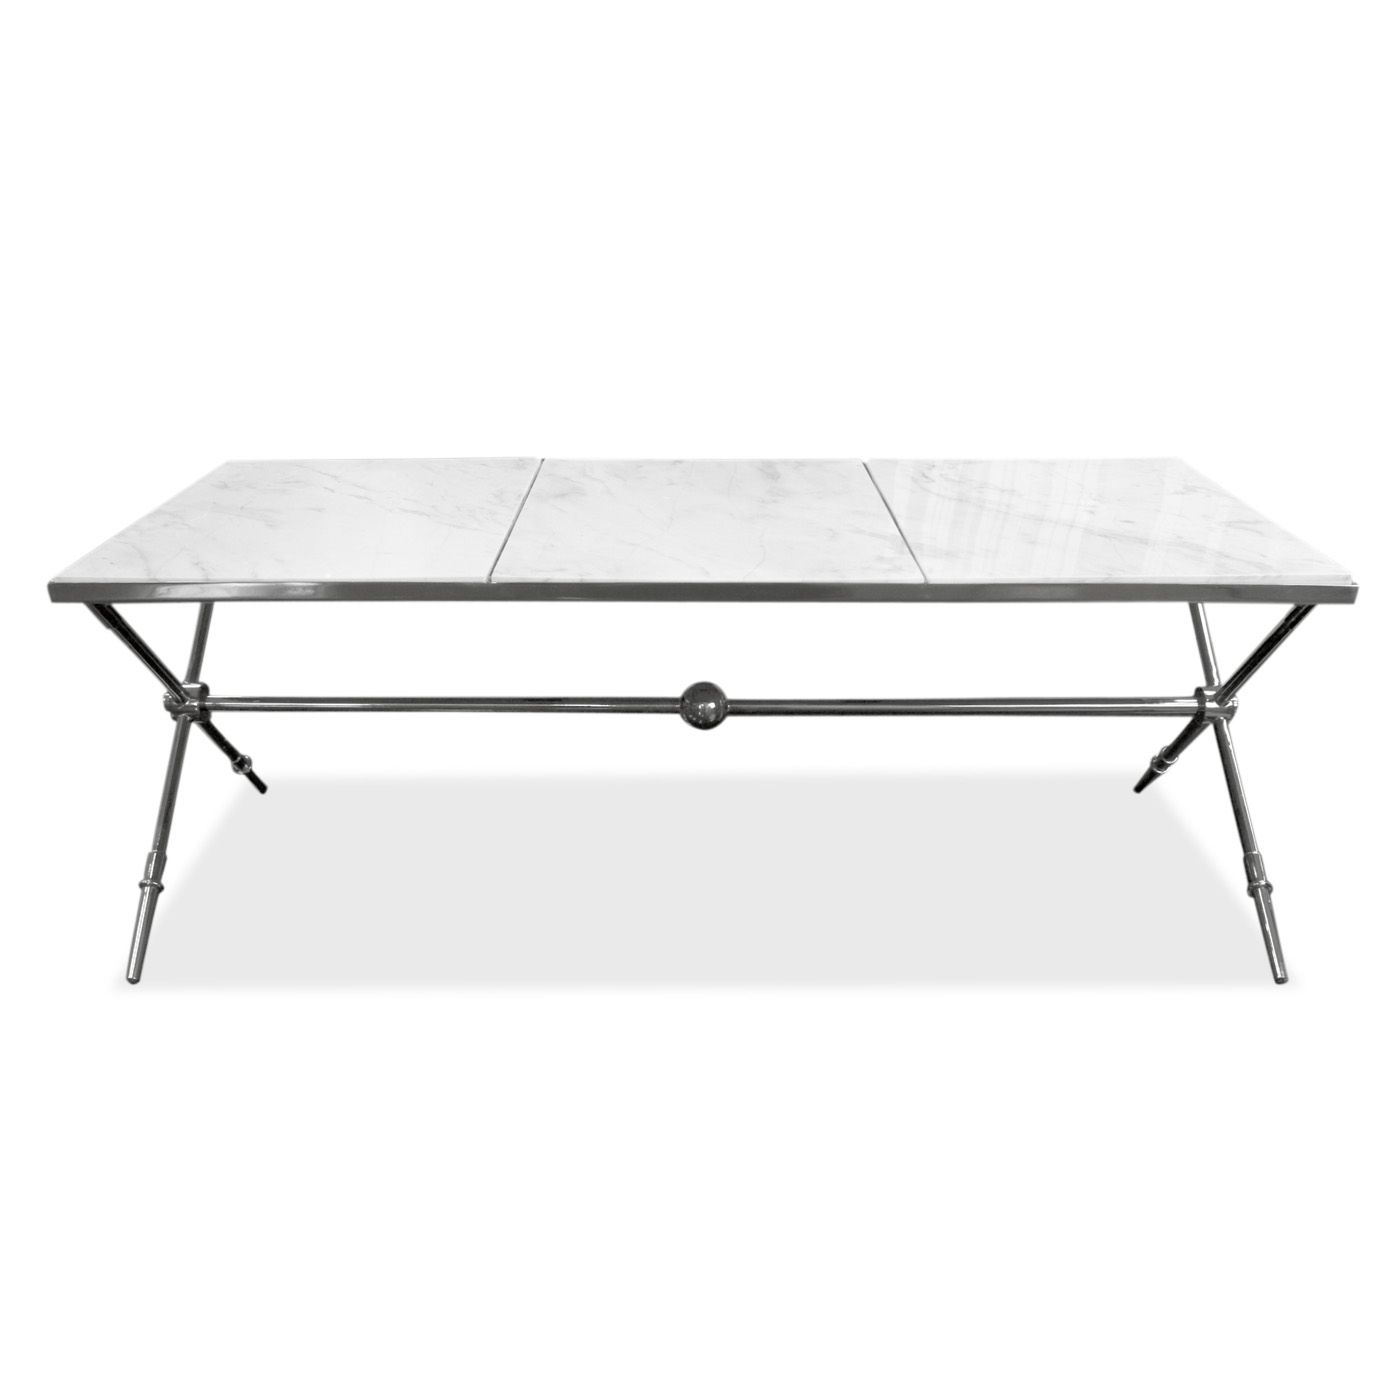 1 495 rider cocktail table 44 long x 20 wide x 17 high md